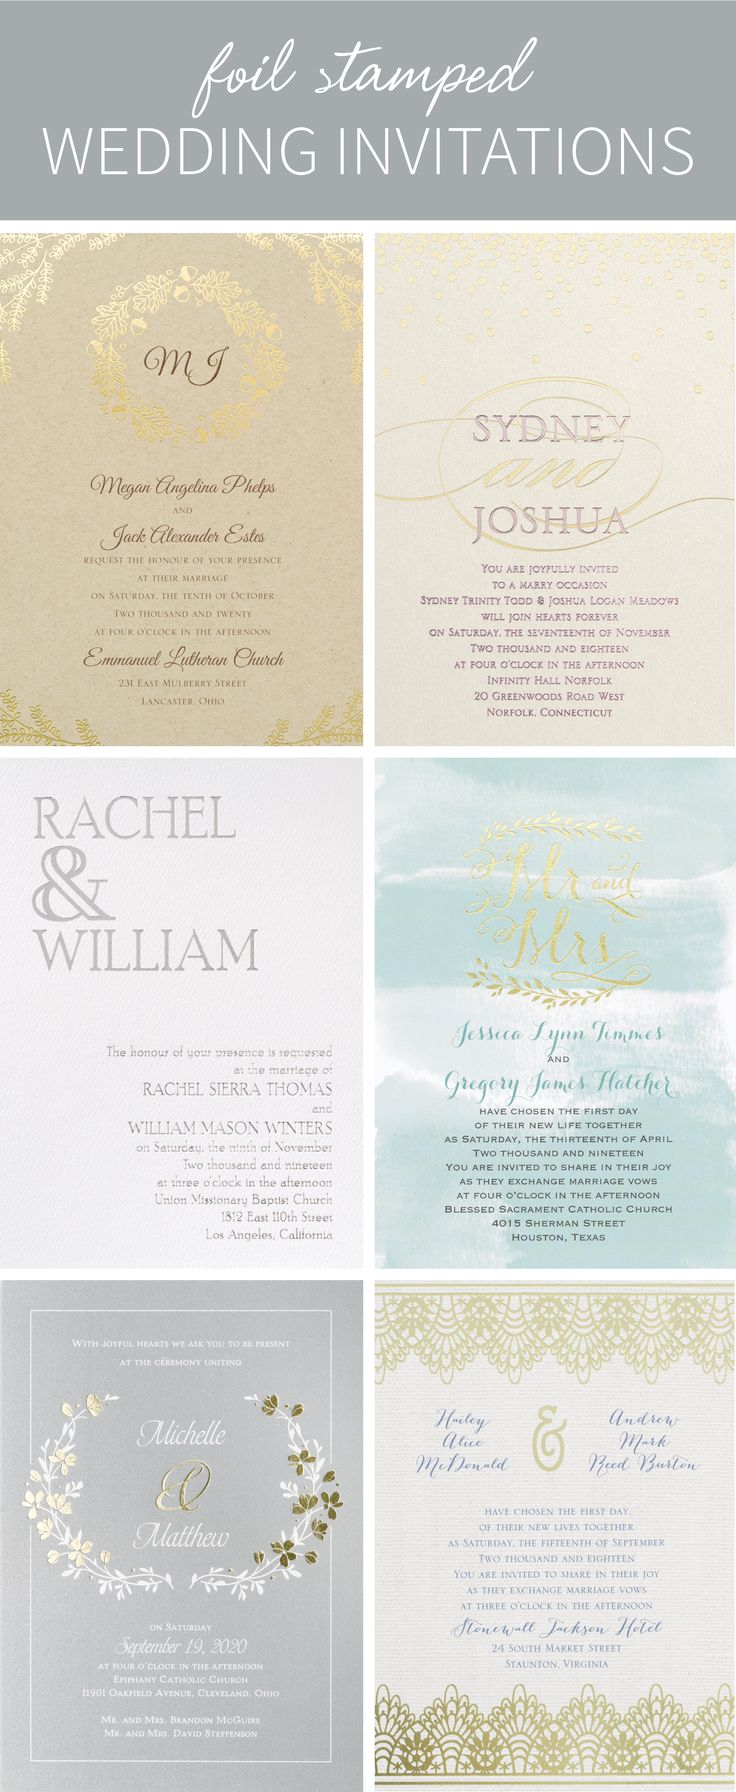 647 best Wedding images on Pinterest | Bridal invitations ...